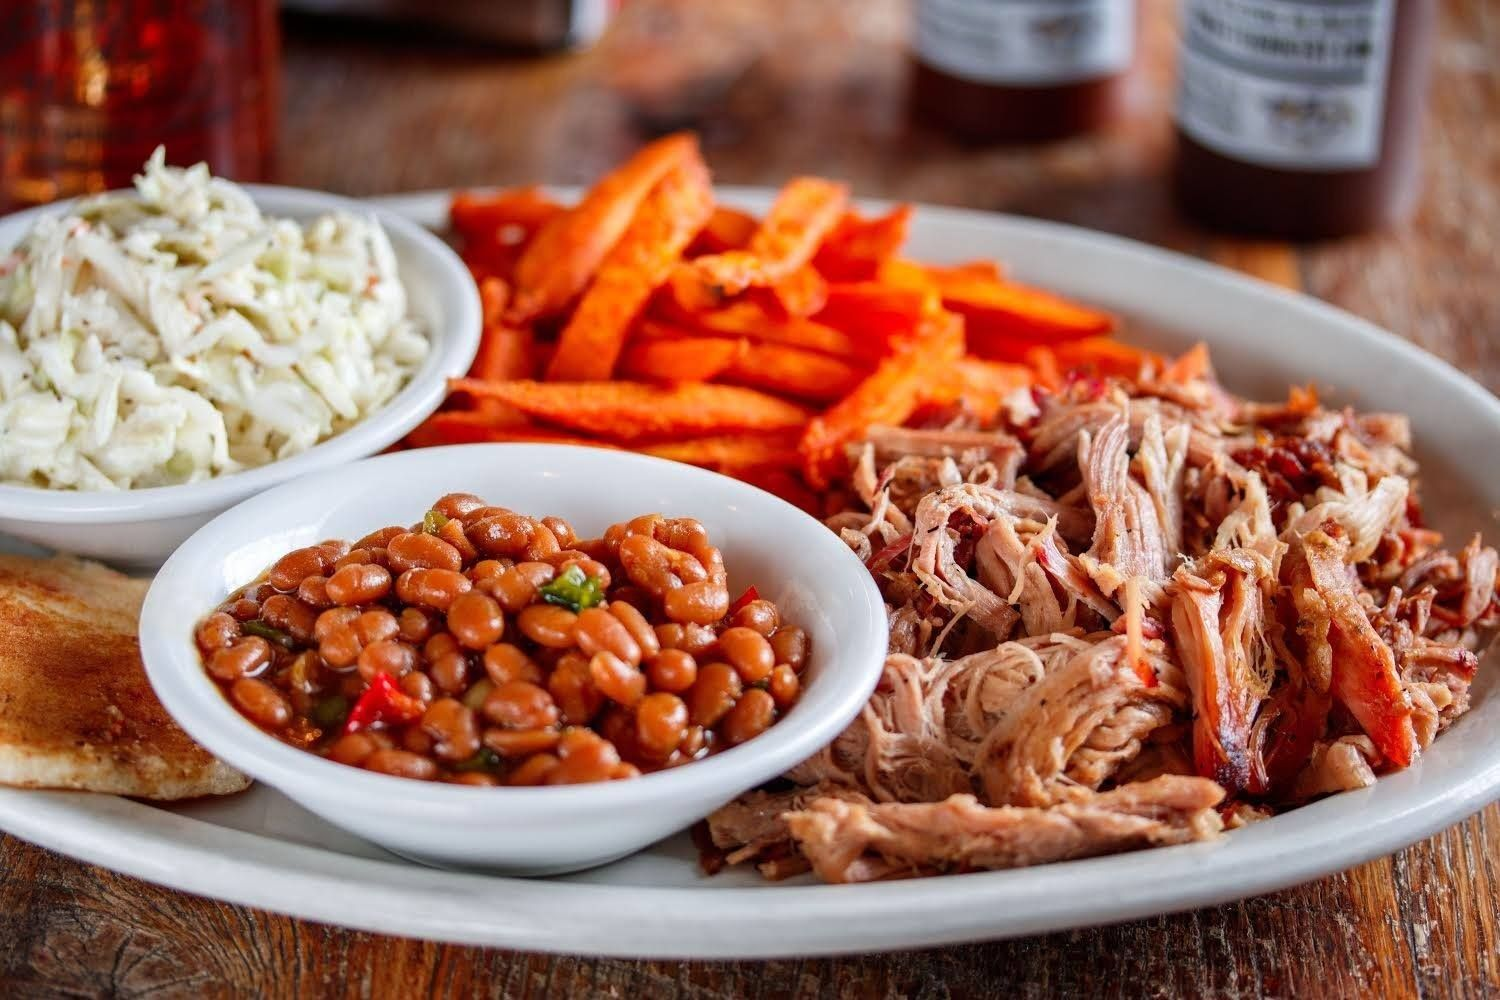 These Baked Beans Will Have You Hooked Find The Recipe Here Baked Bean Recipes Bean Recipes Baked Beans